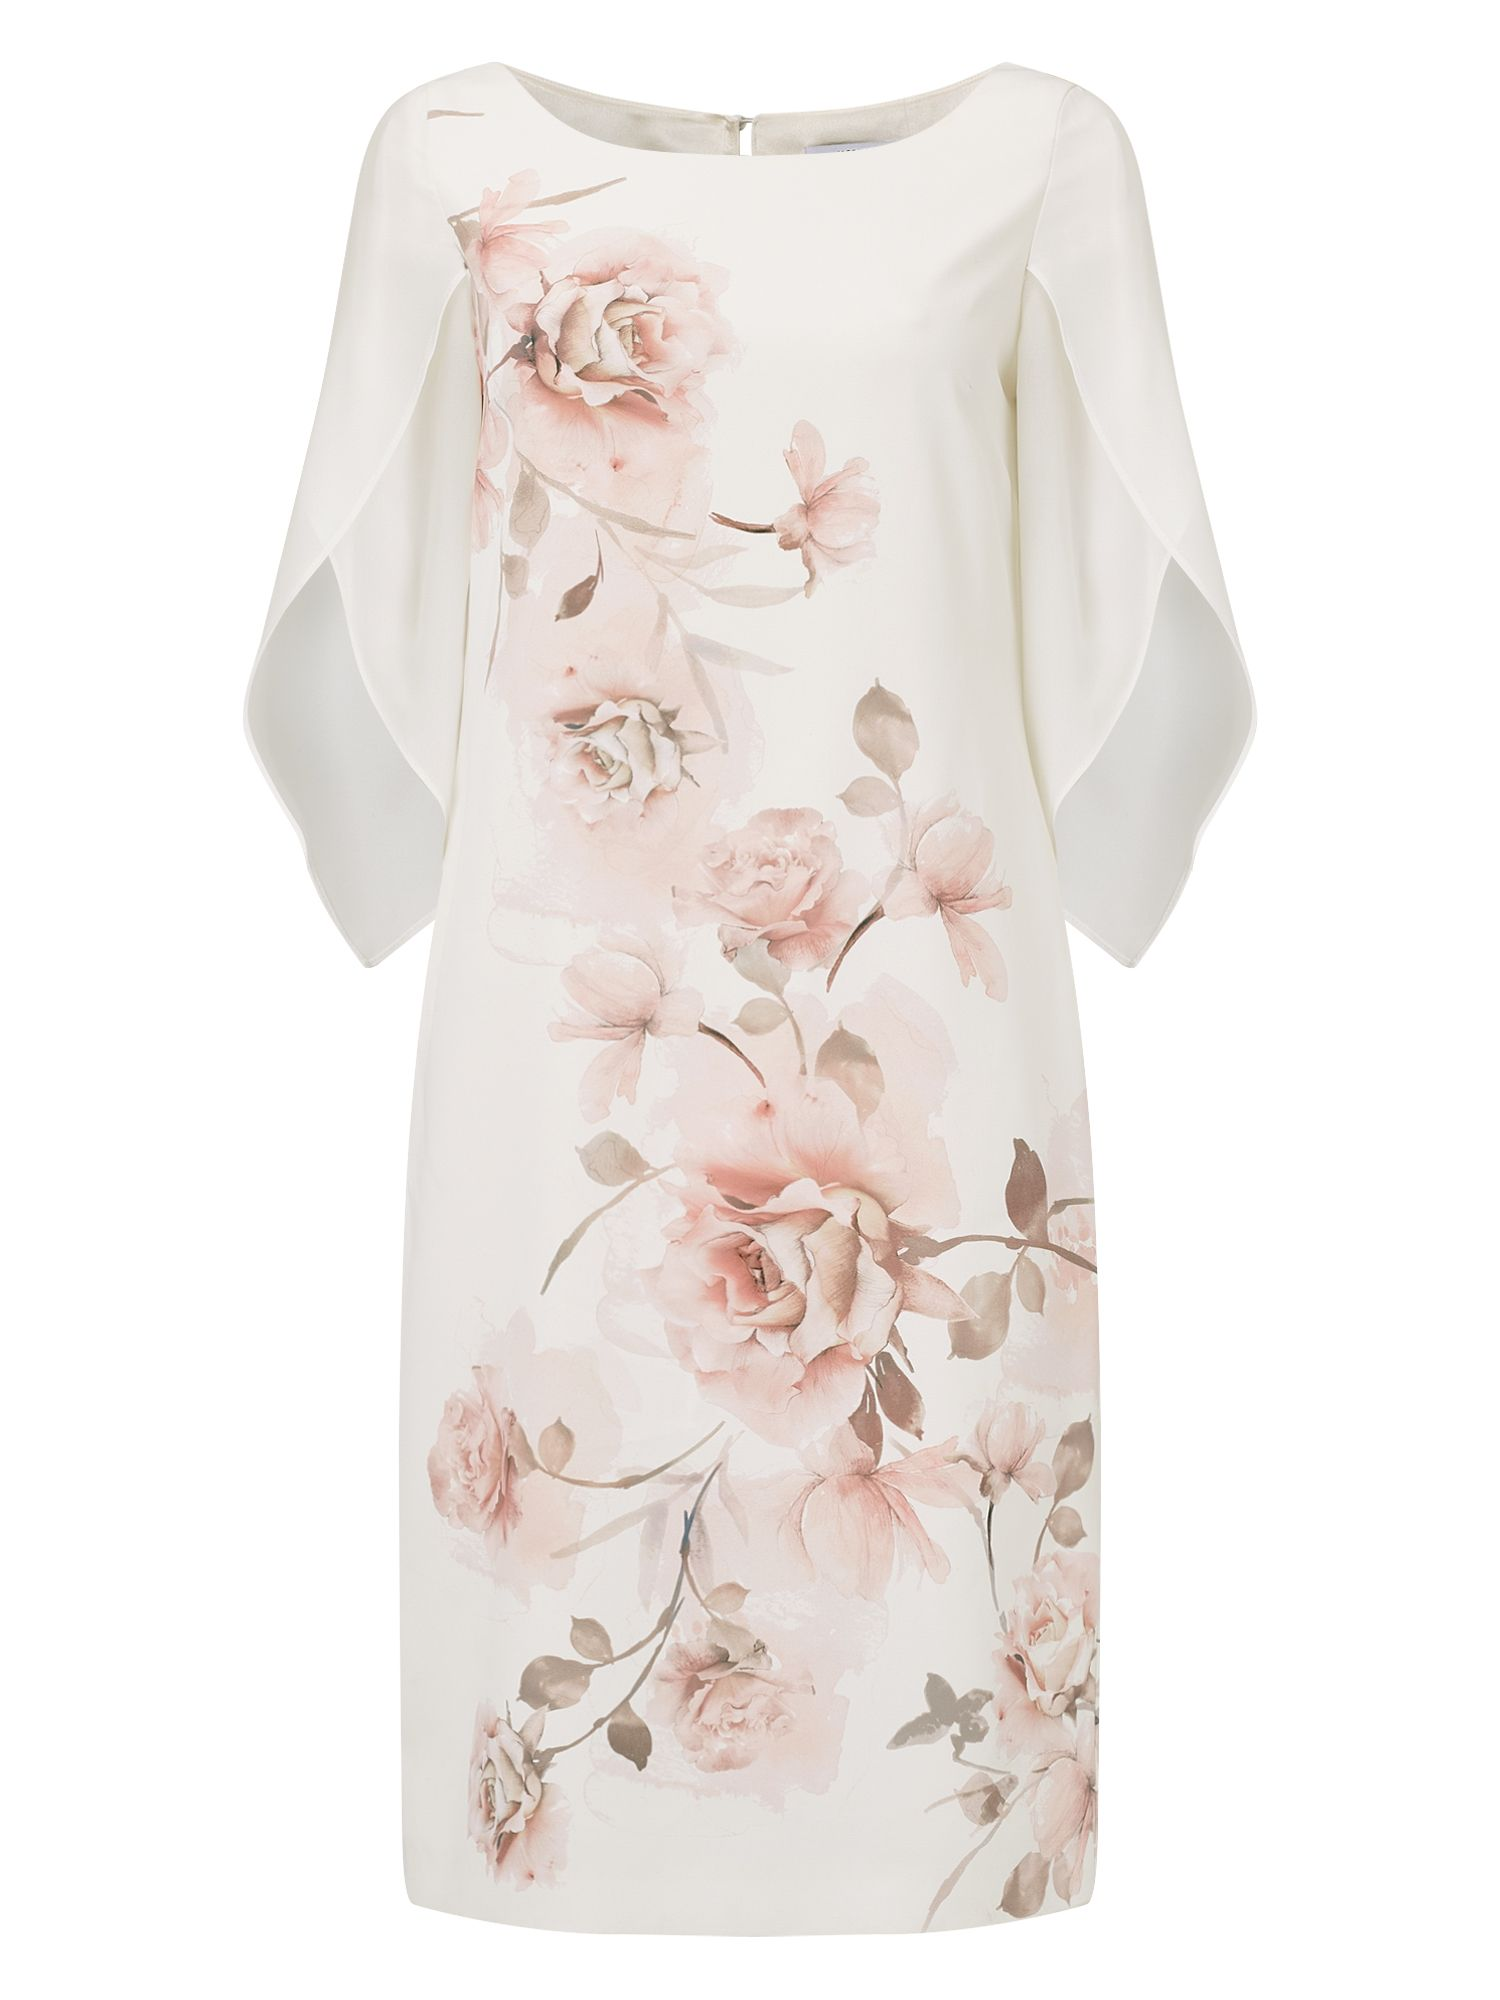 Jacques Vert Camilla Printed Dress, Light Pink